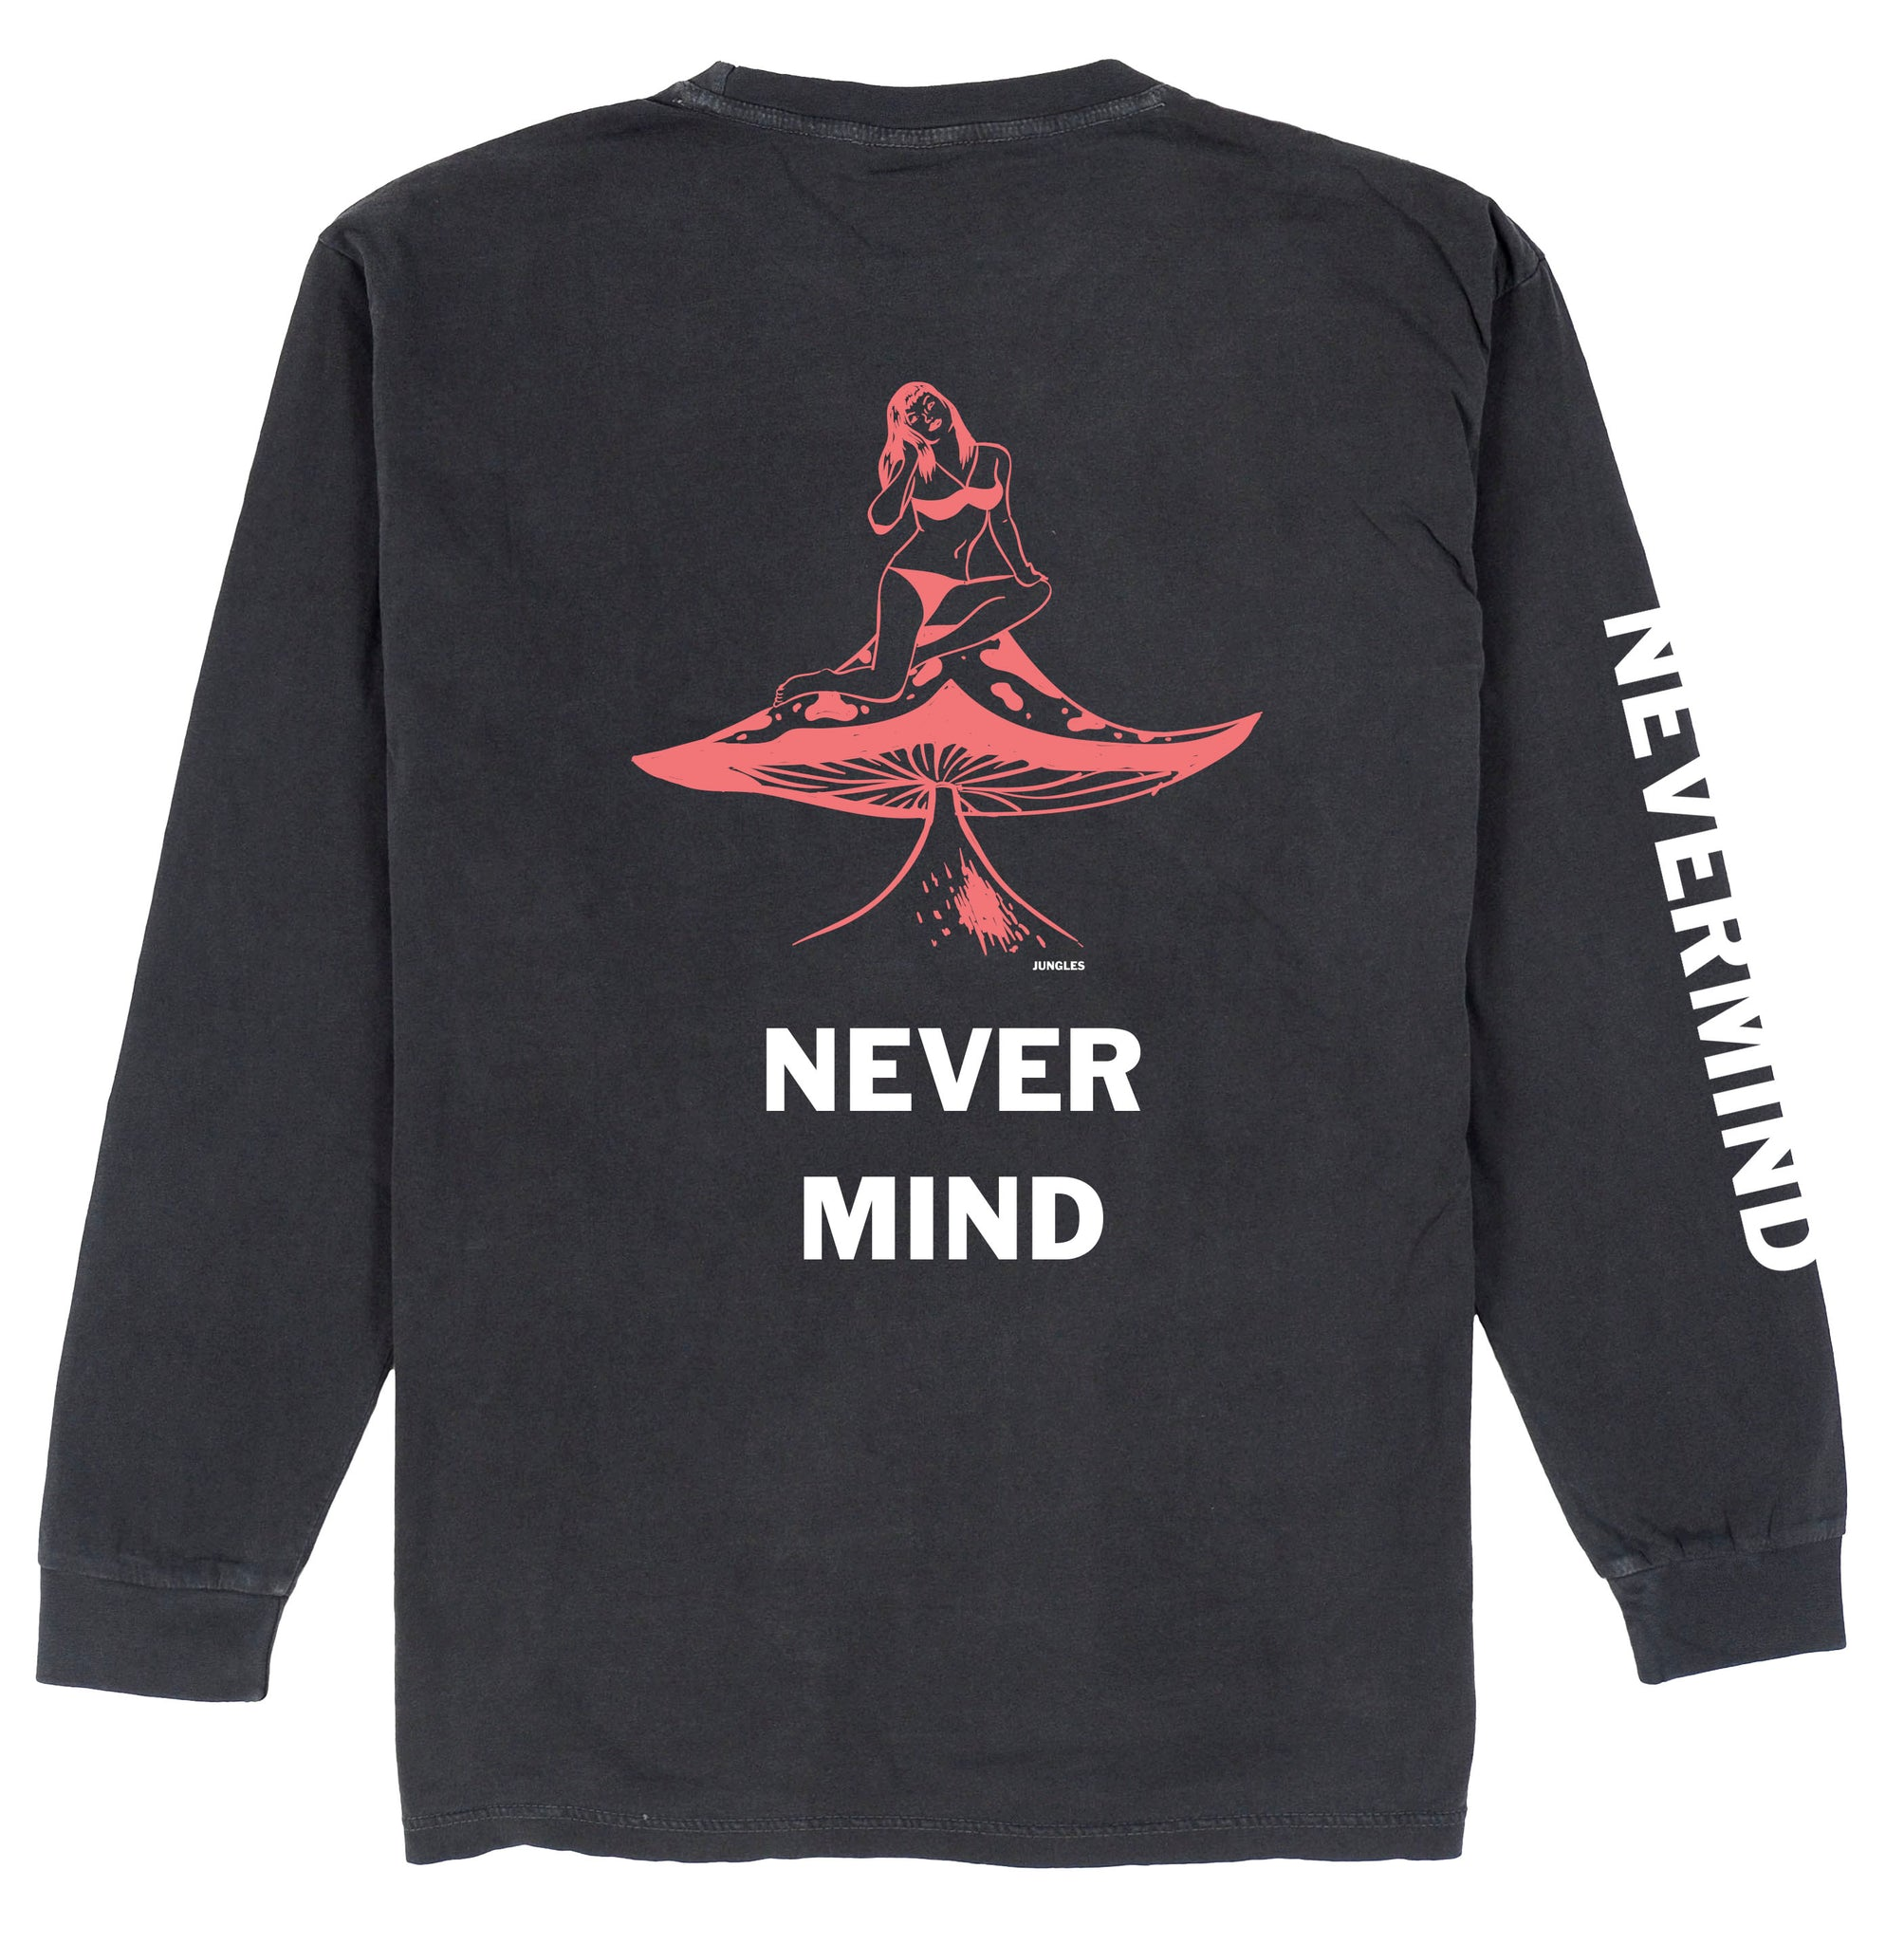 NEVERMIND LS TEE CHARCOAL